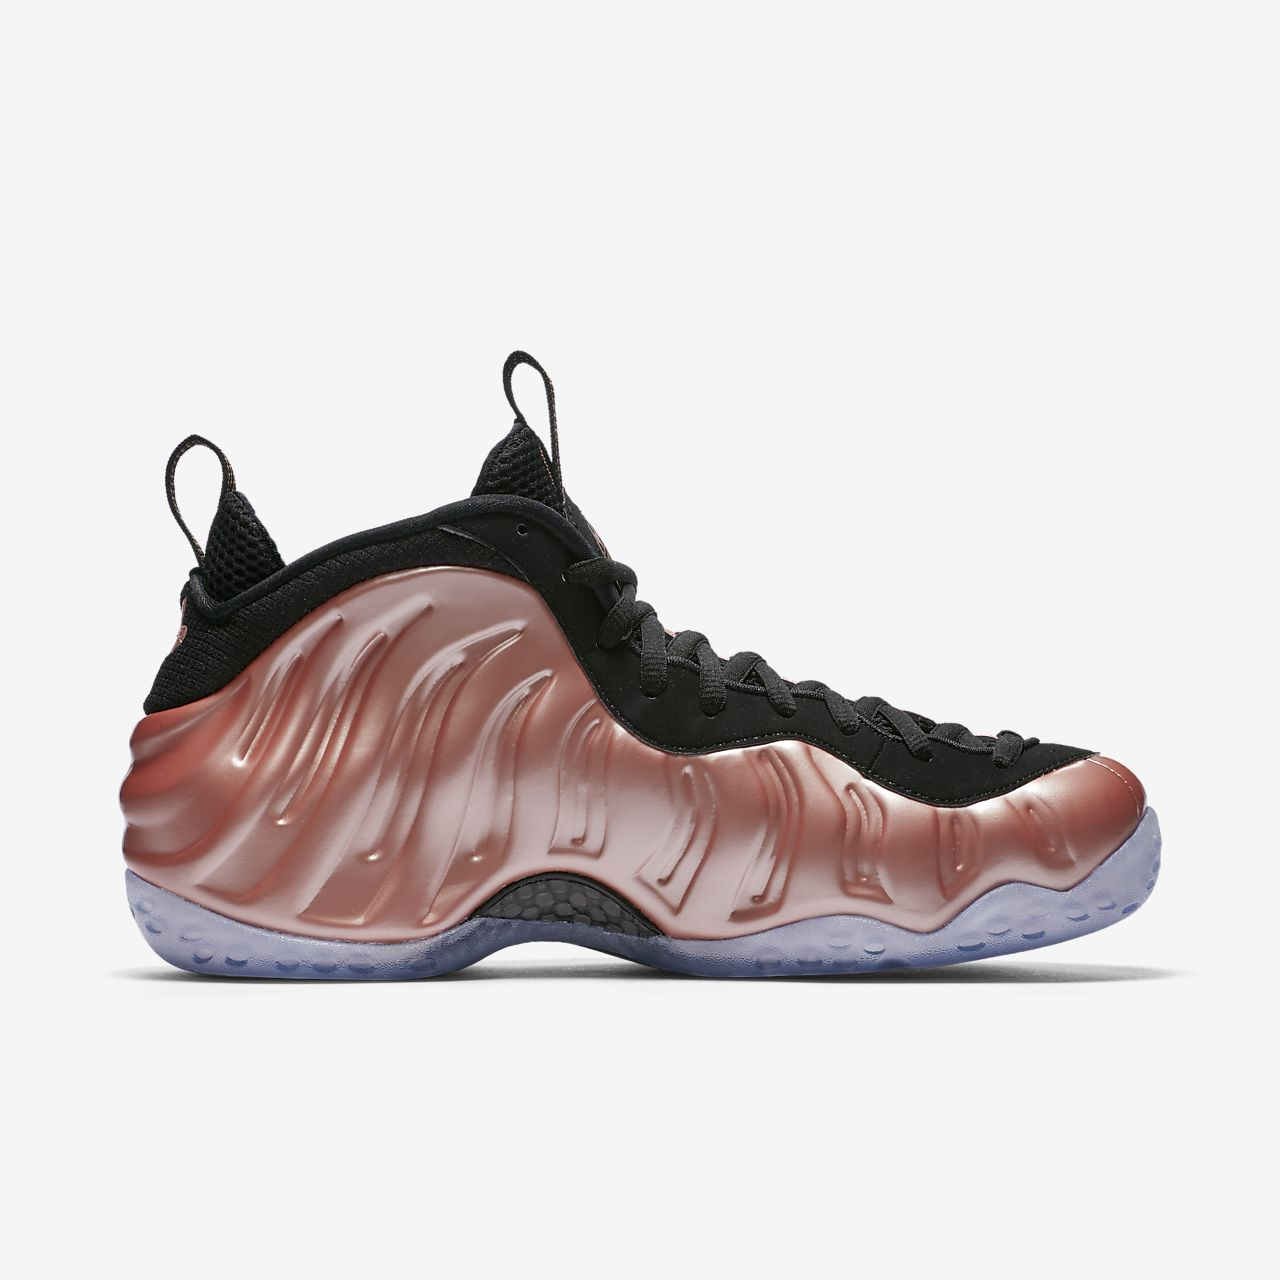 Nike Air Foamposite Infantil